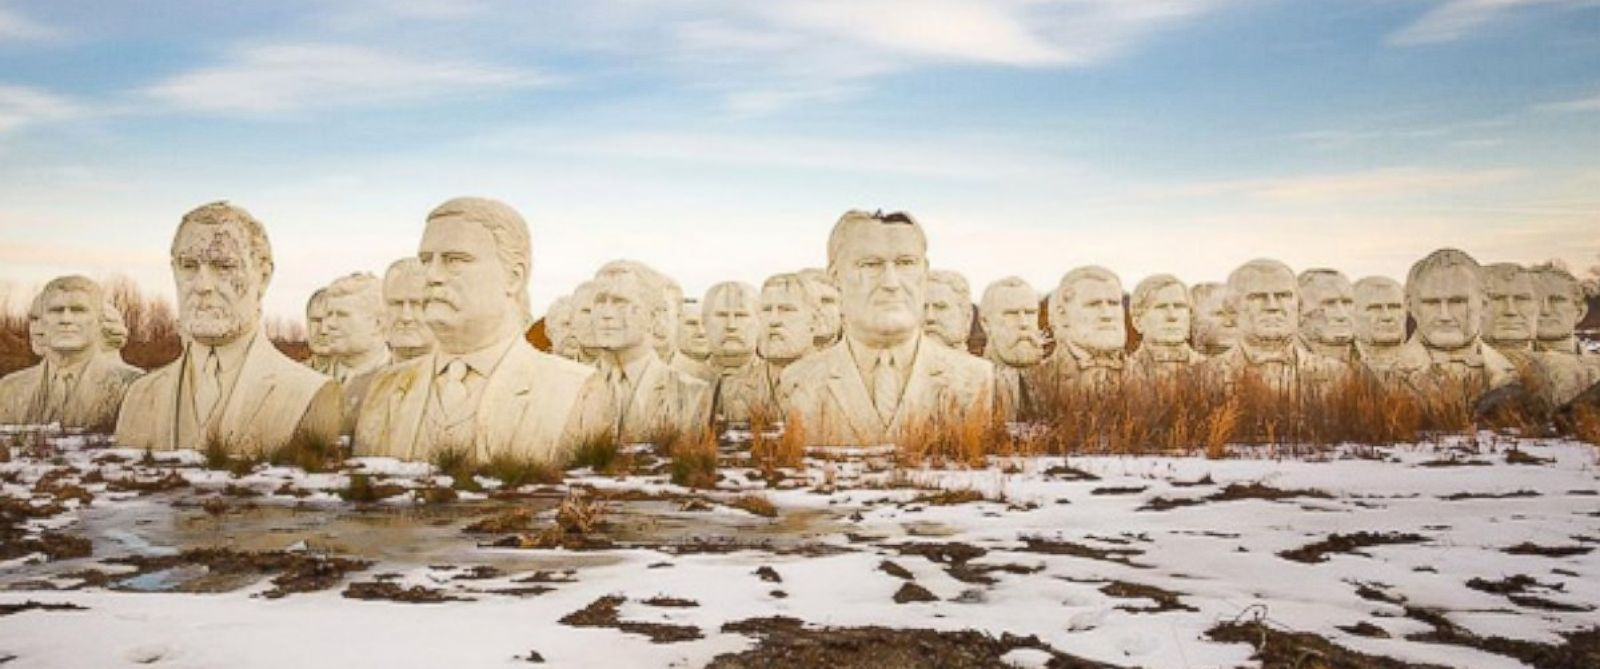 PHOTO: Stone busts of former U.S. Presidents sit in a field near Williamsburg, Virginia. The 20-foot-tall heads were saved from a nearby presidential museum when it closed in 2010.